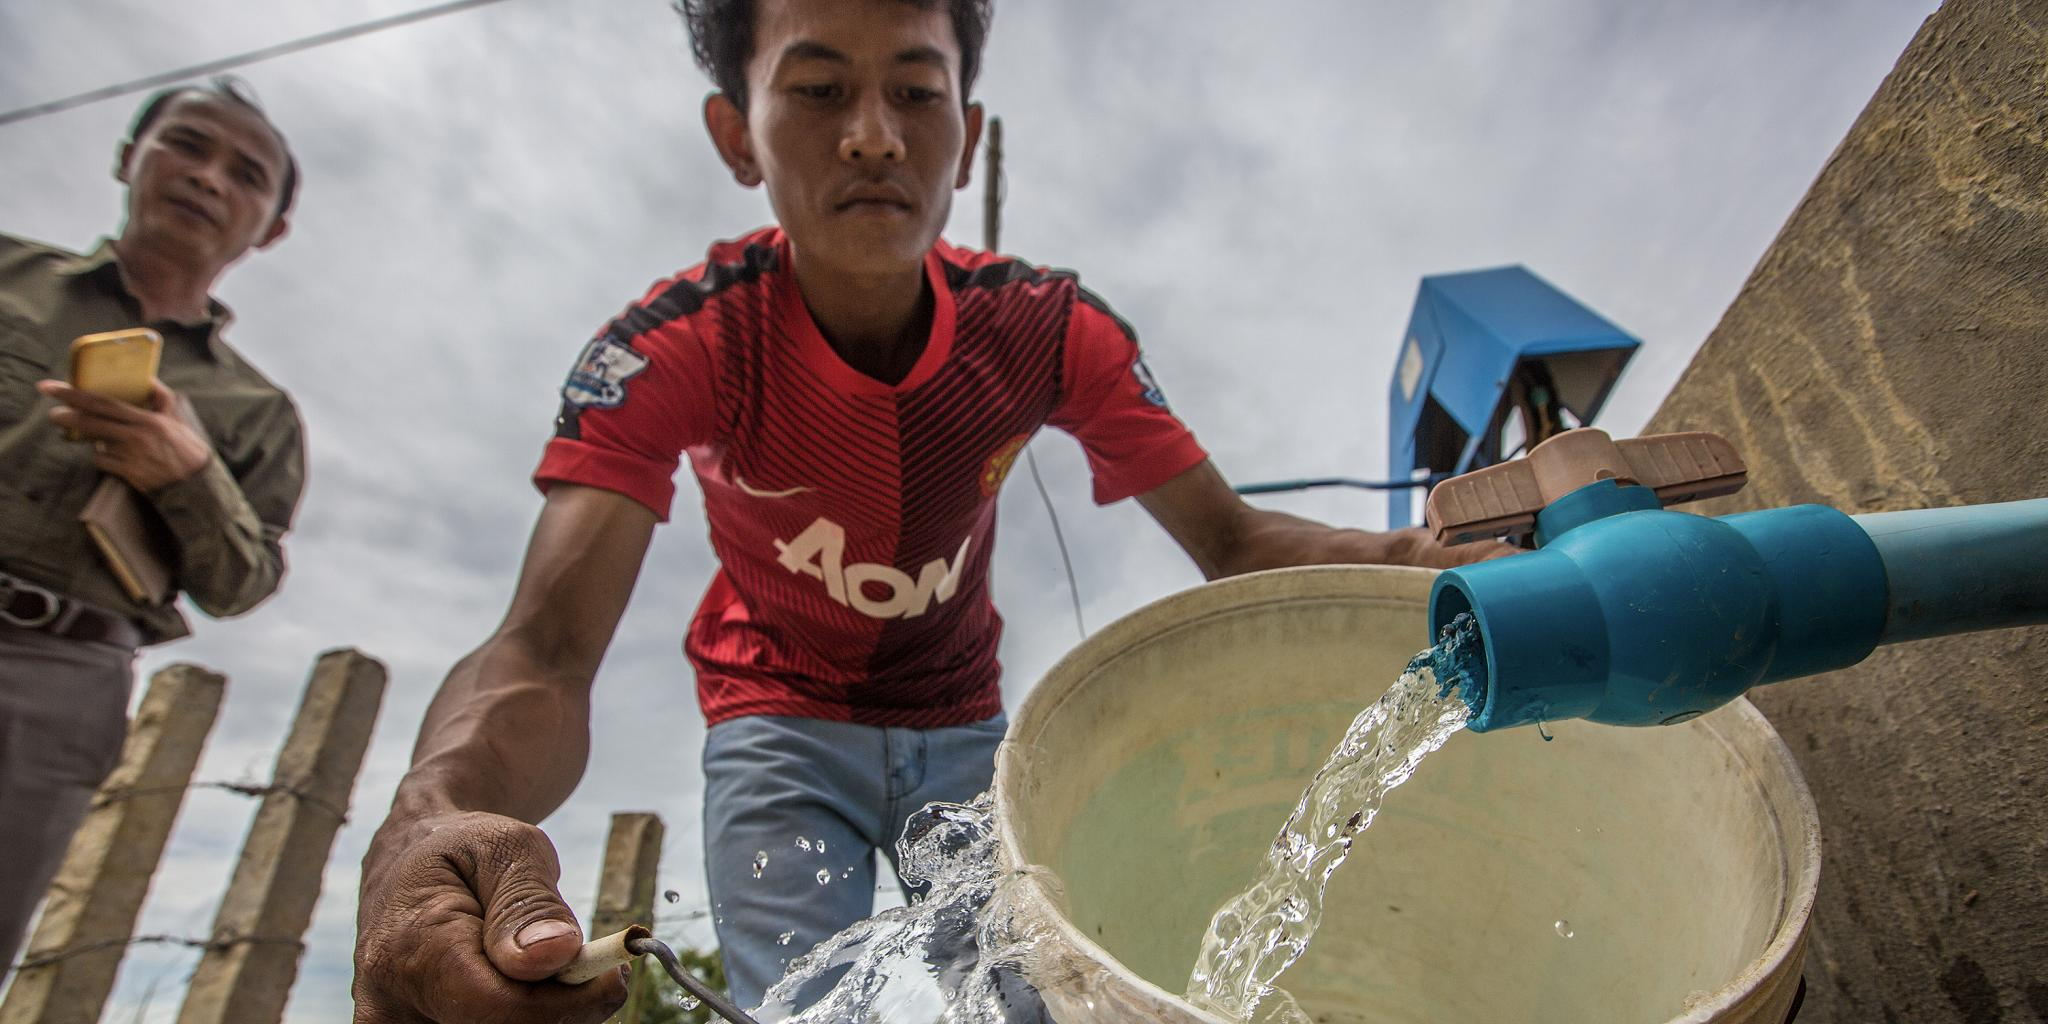 About 64% of households have access to safe drinking water within their premises, but fewer households in rural areas (58%) have this amenity. Photo credit: ADB.